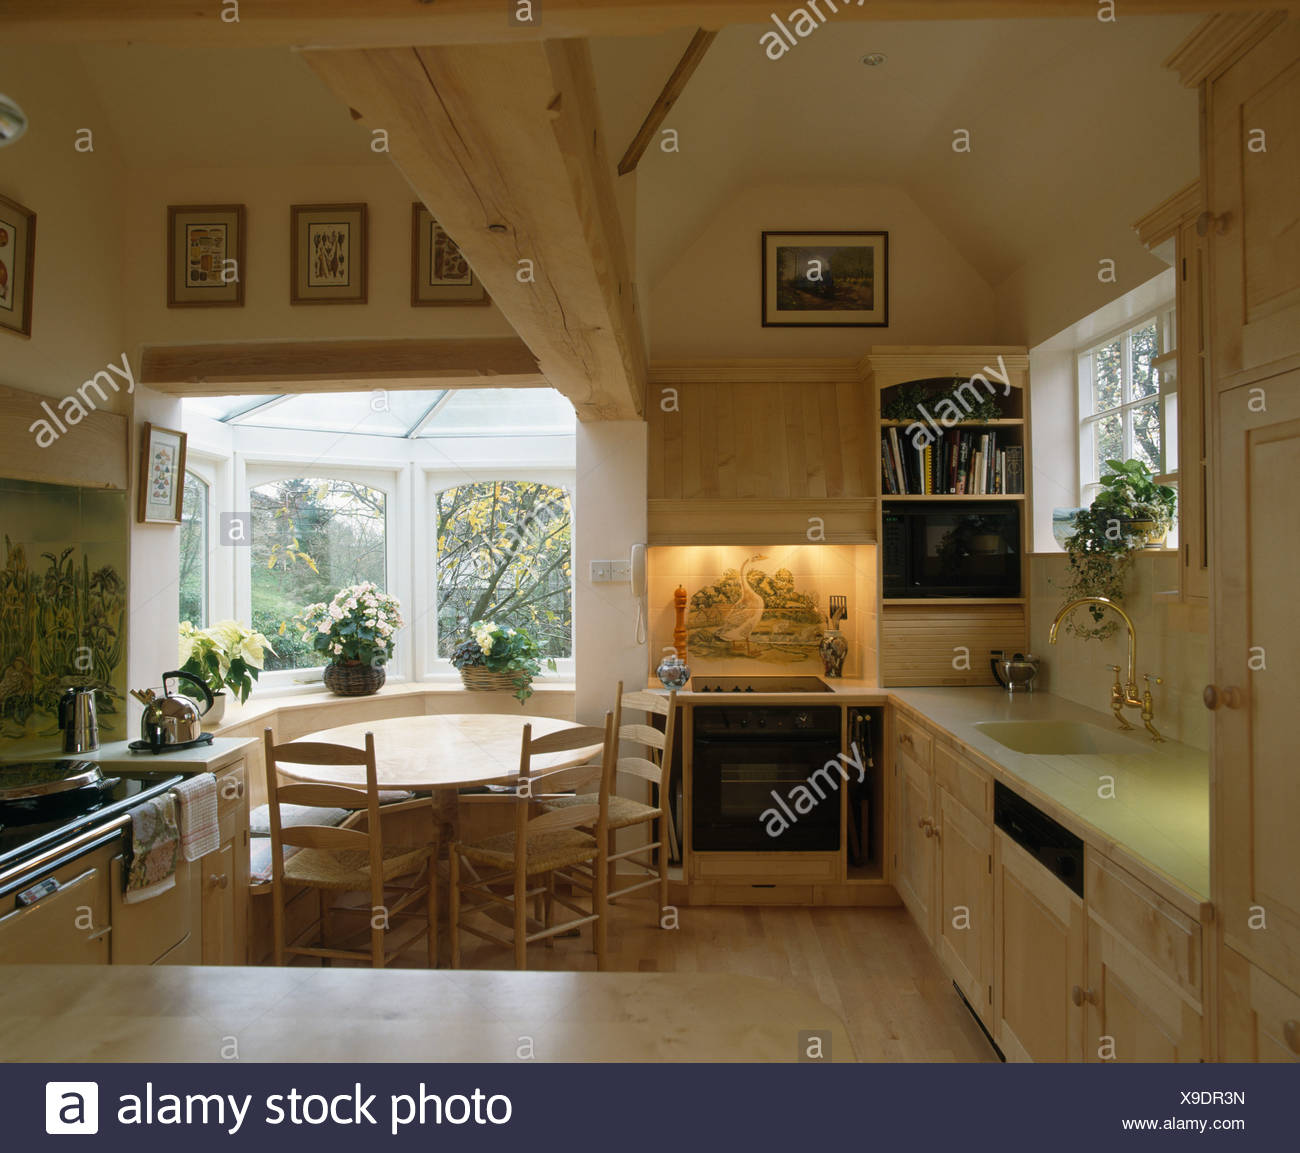 Oven In Lighted Alcove Country Kitchen With Circular Wooden Table Window Of Small Diningroom